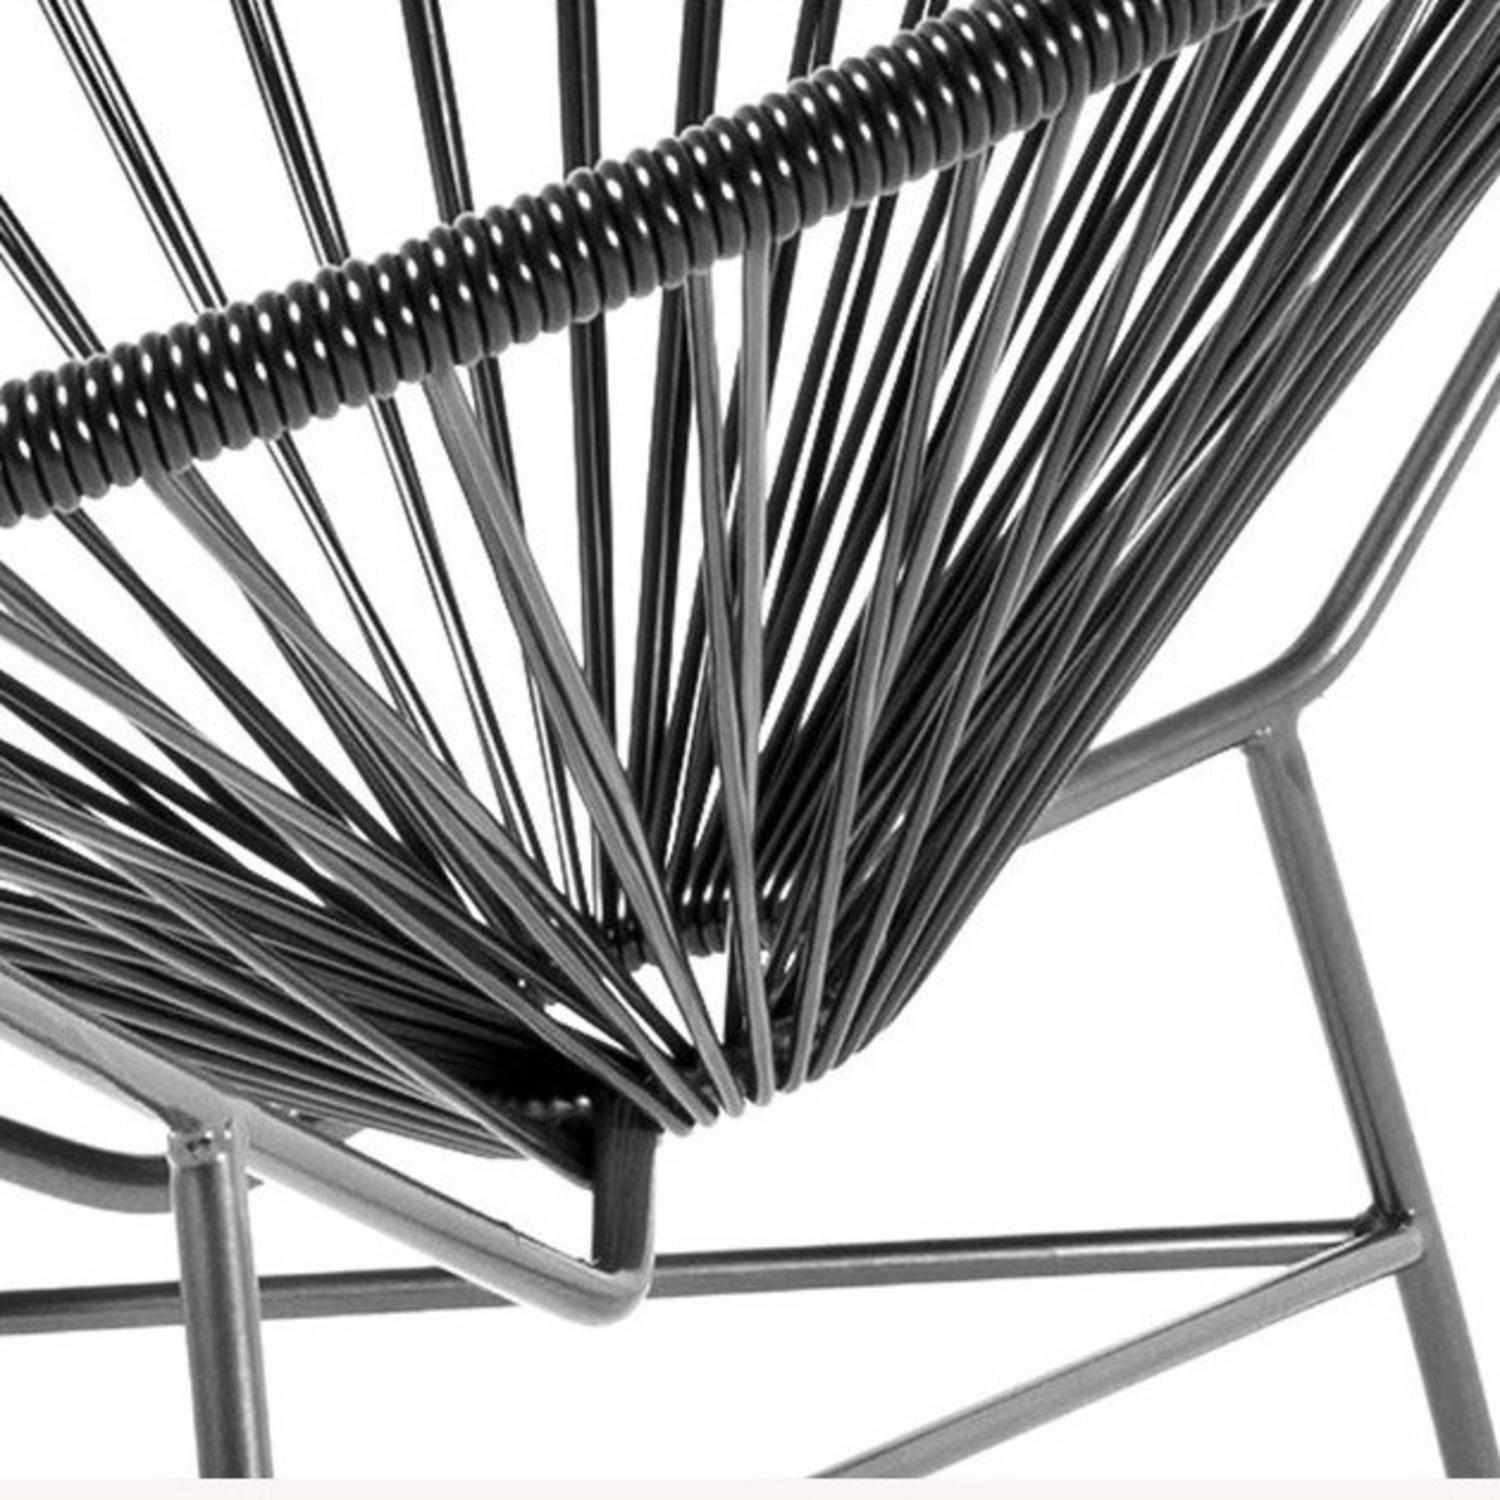 Crate & Barrel Black Spindle Lounge Chair - image-6